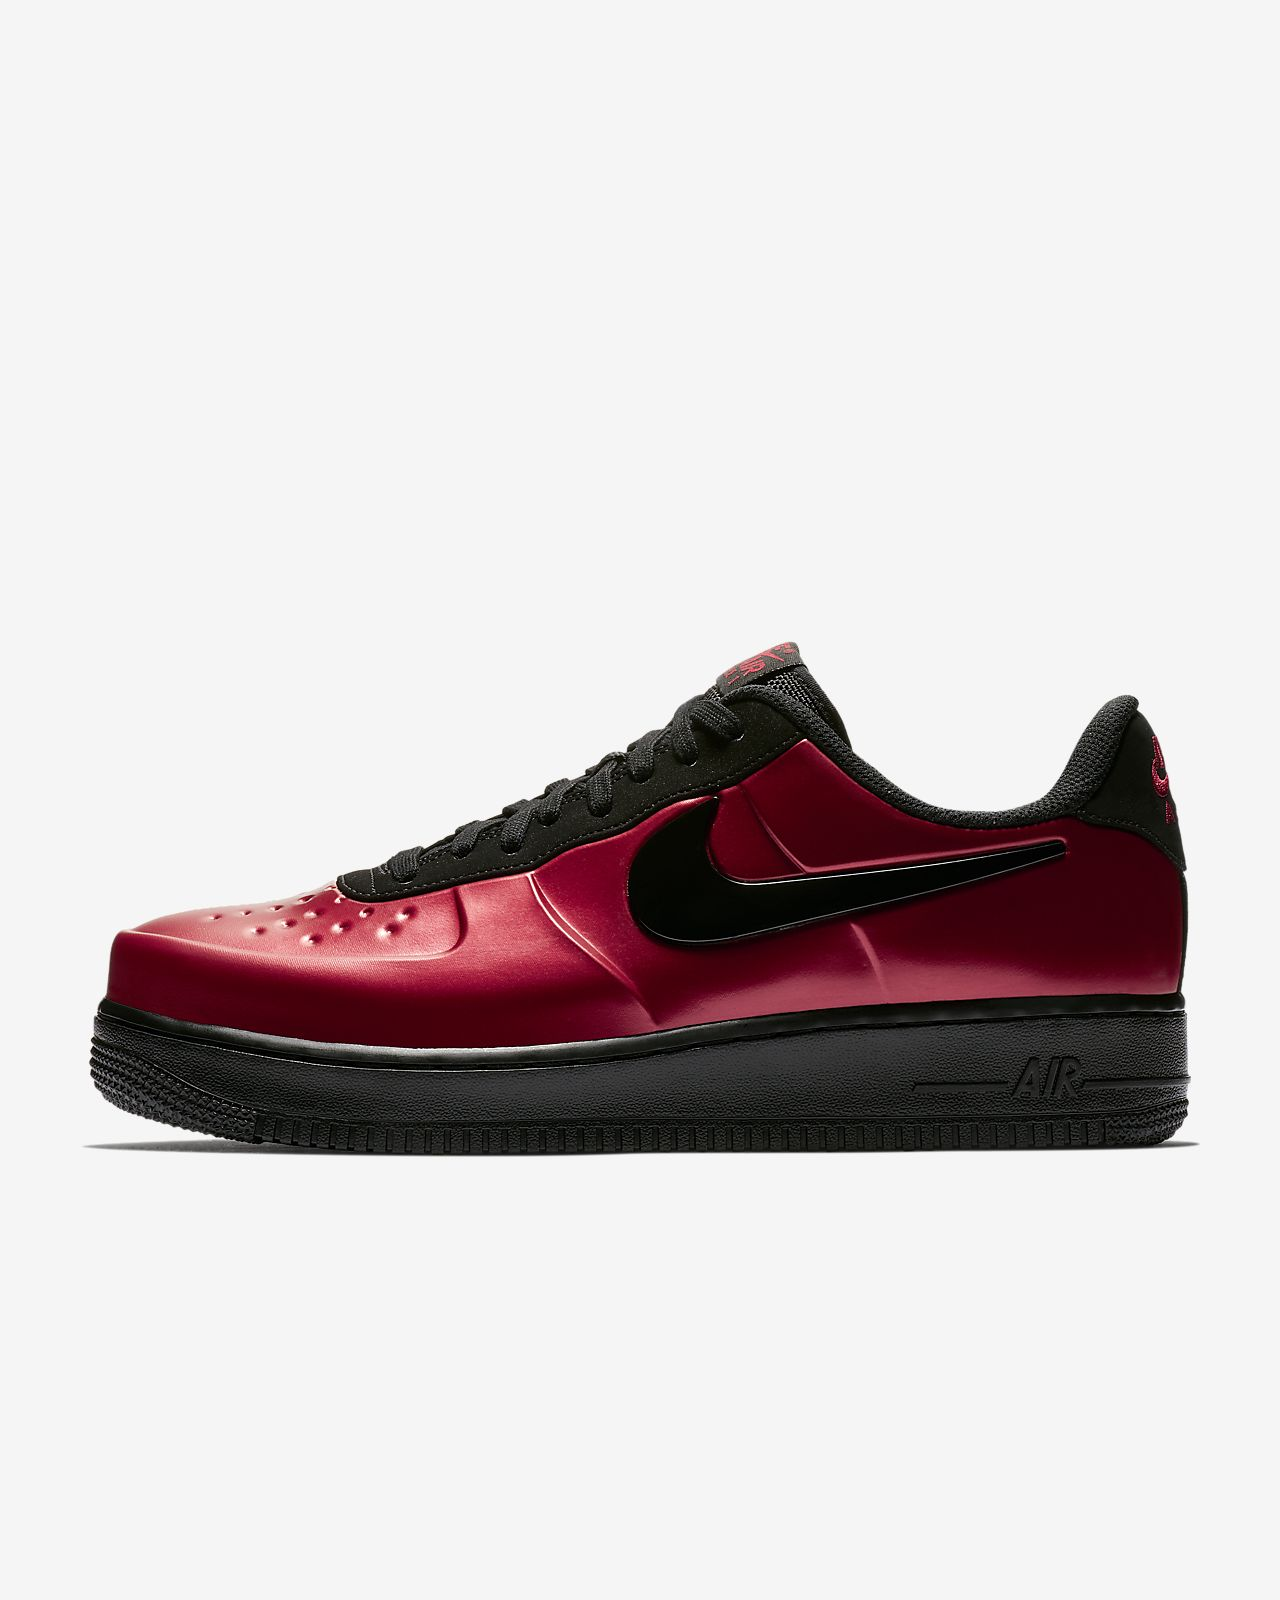 a7171bf43fa Low Resolution Nike Air Force 1 Foamposite Pro Cup Herrenschuh Nike Air  Force 1 Foamposite Pro Cup Herrenschuh